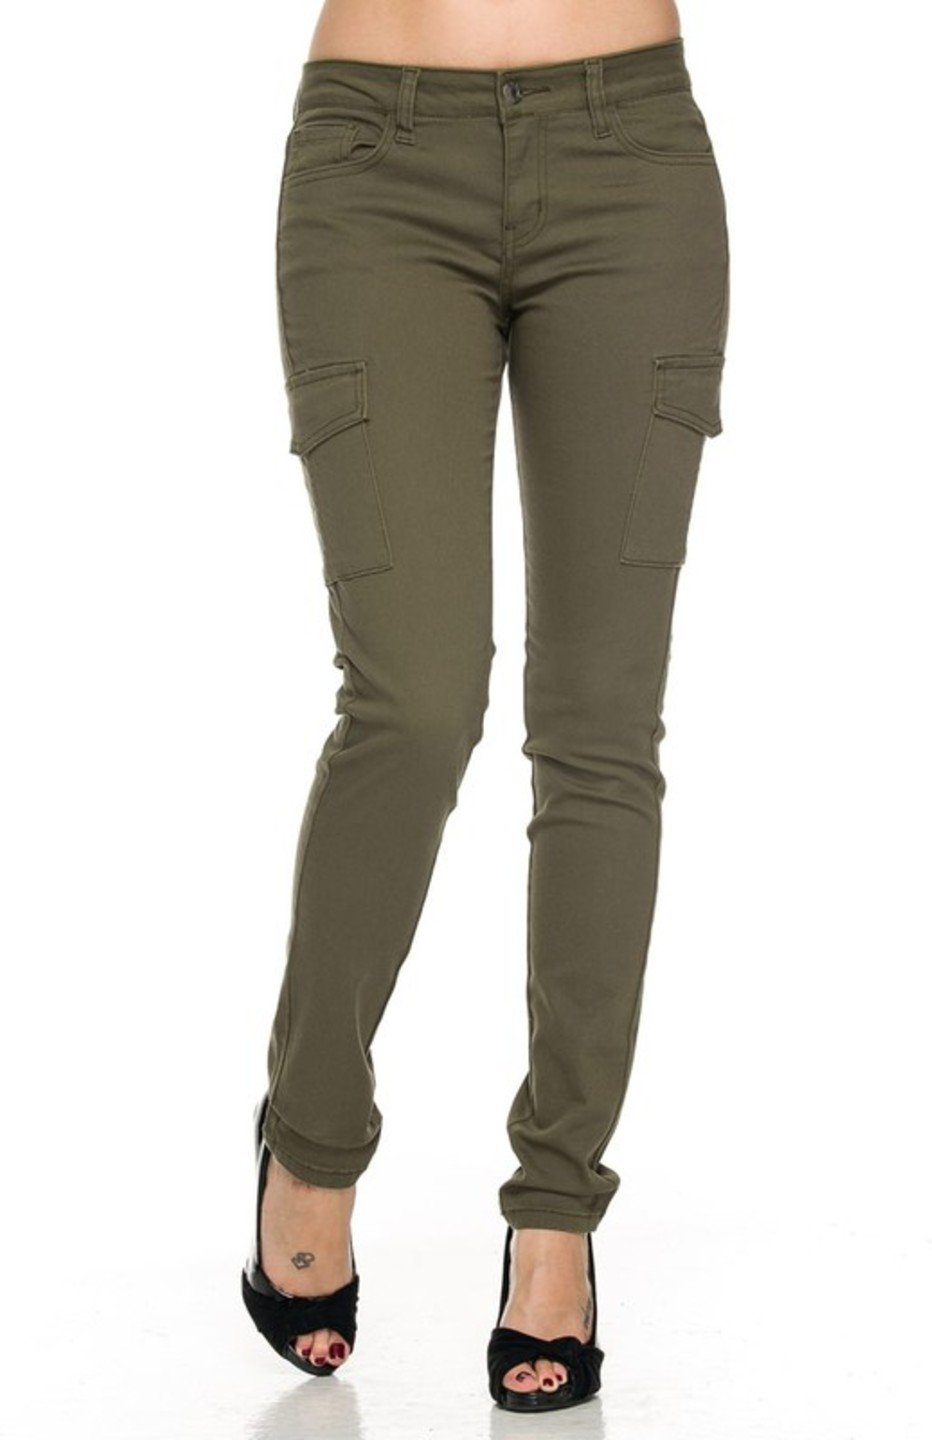 2LUV Women's Fashionable Skinny Cargo Twill Pants Olive 13